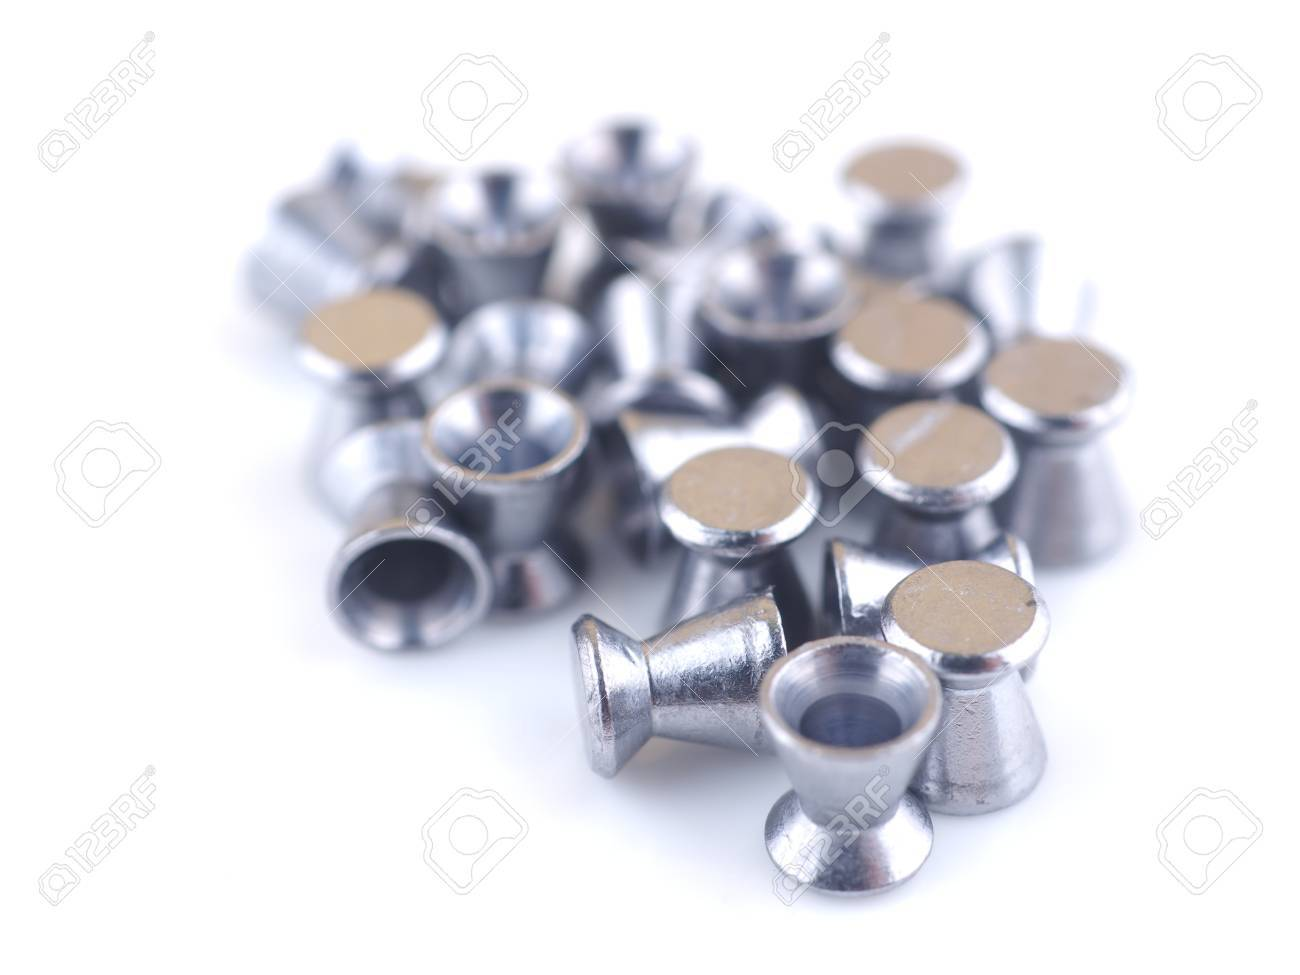 airgun bullets on a white background